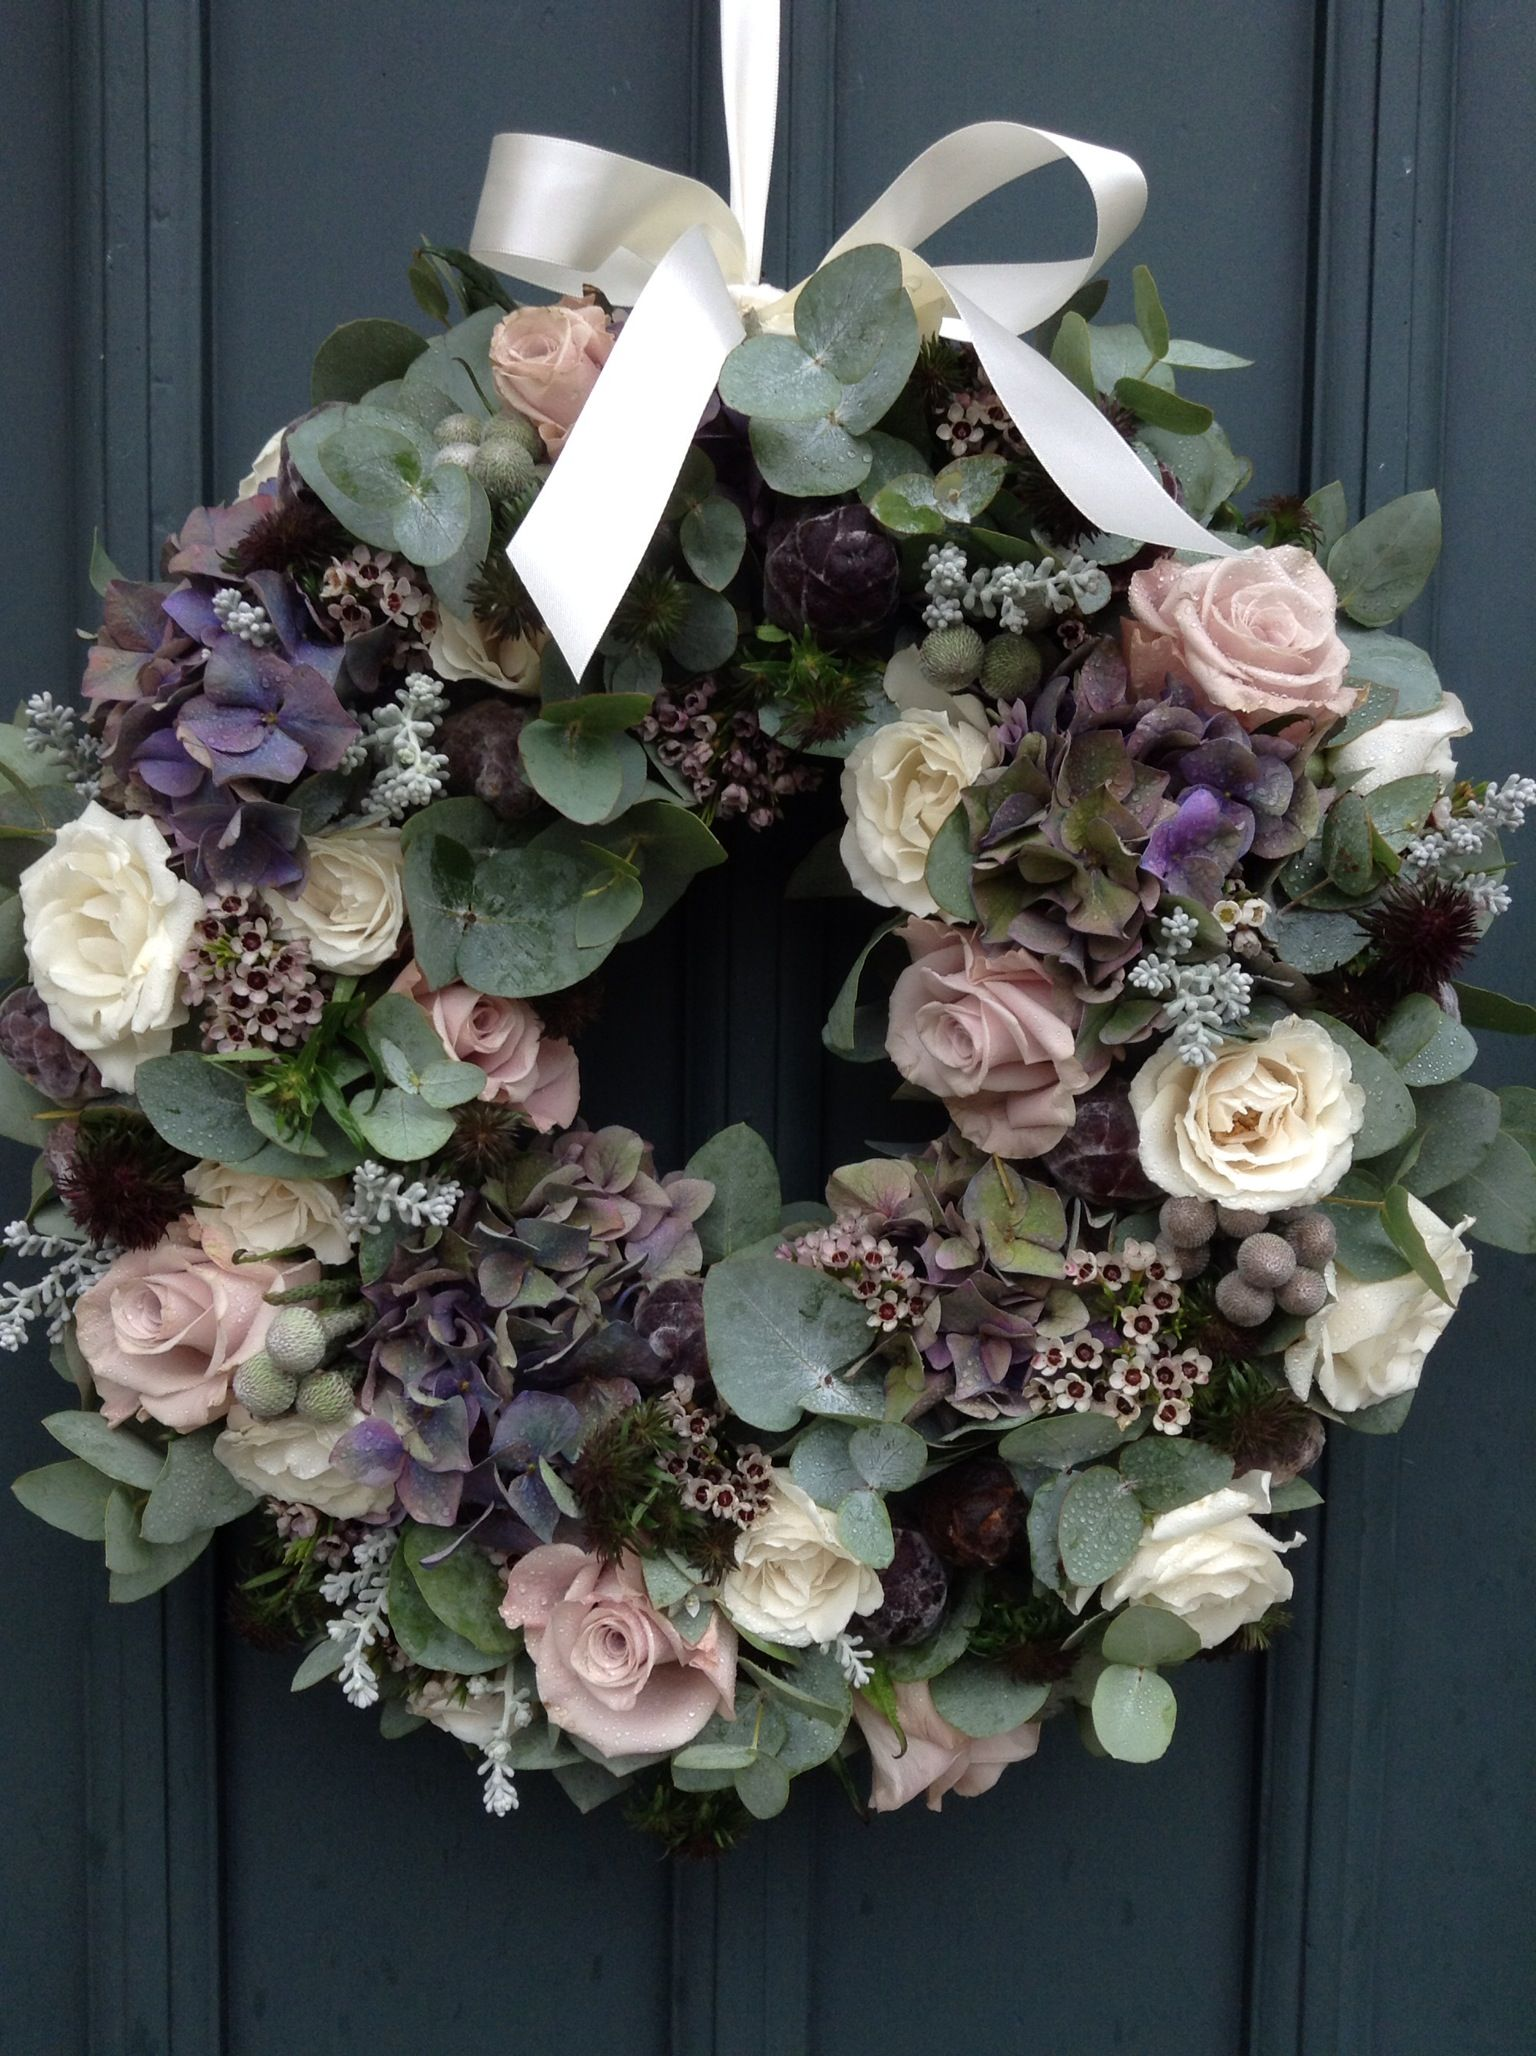 Director Rachel recently styled her friend Lucie's wedding - this door wreath is one of our favourites.